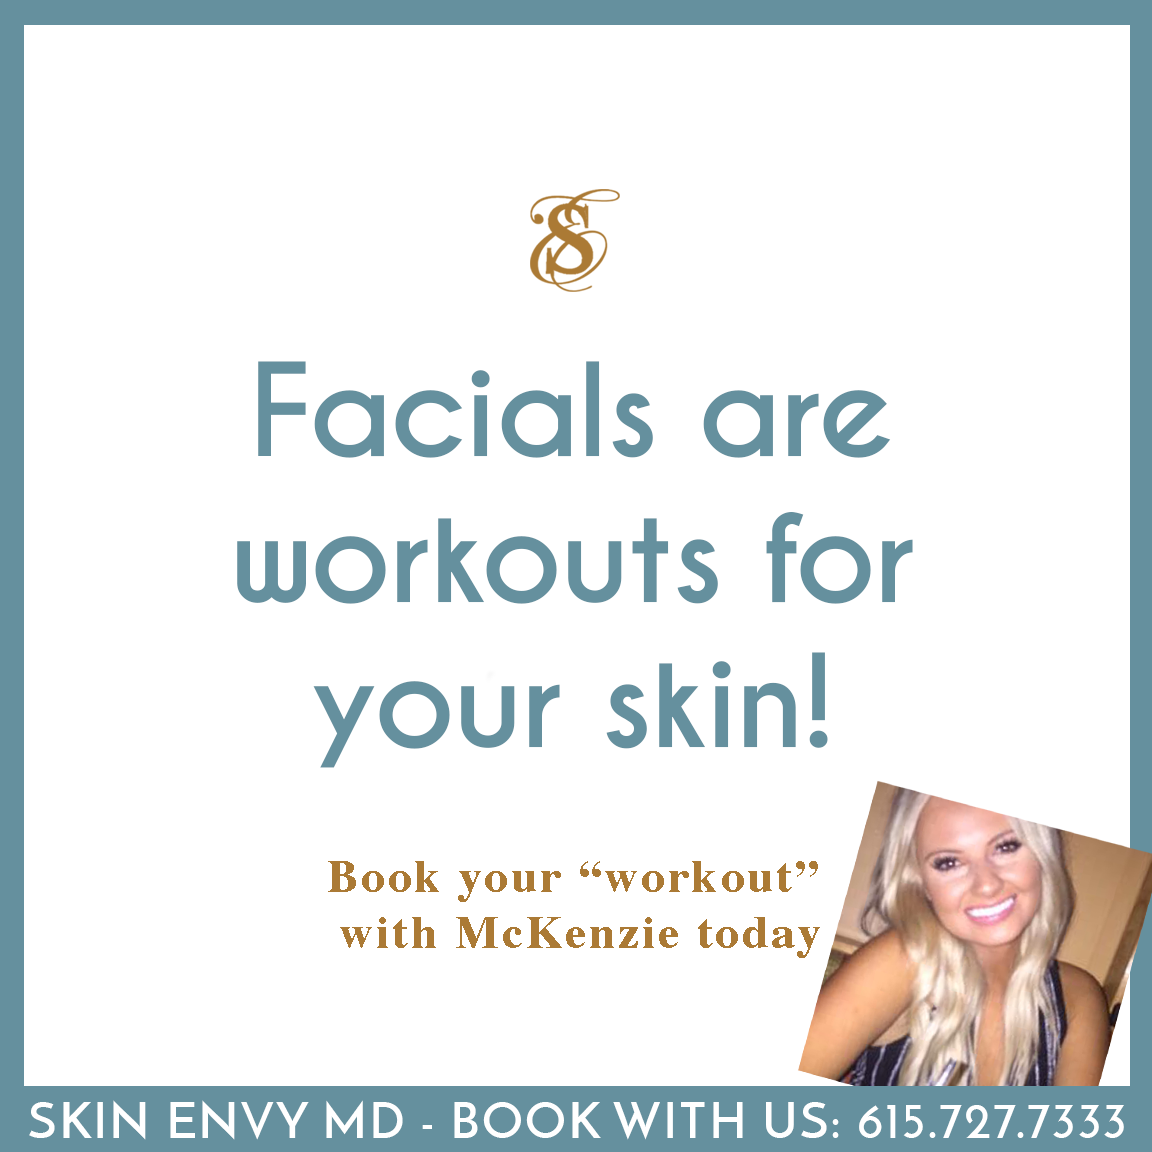 Facials are Workouts for Your Skin - Book Your Workout with McKenzie Today - by Skin Envy MD Nashville.png